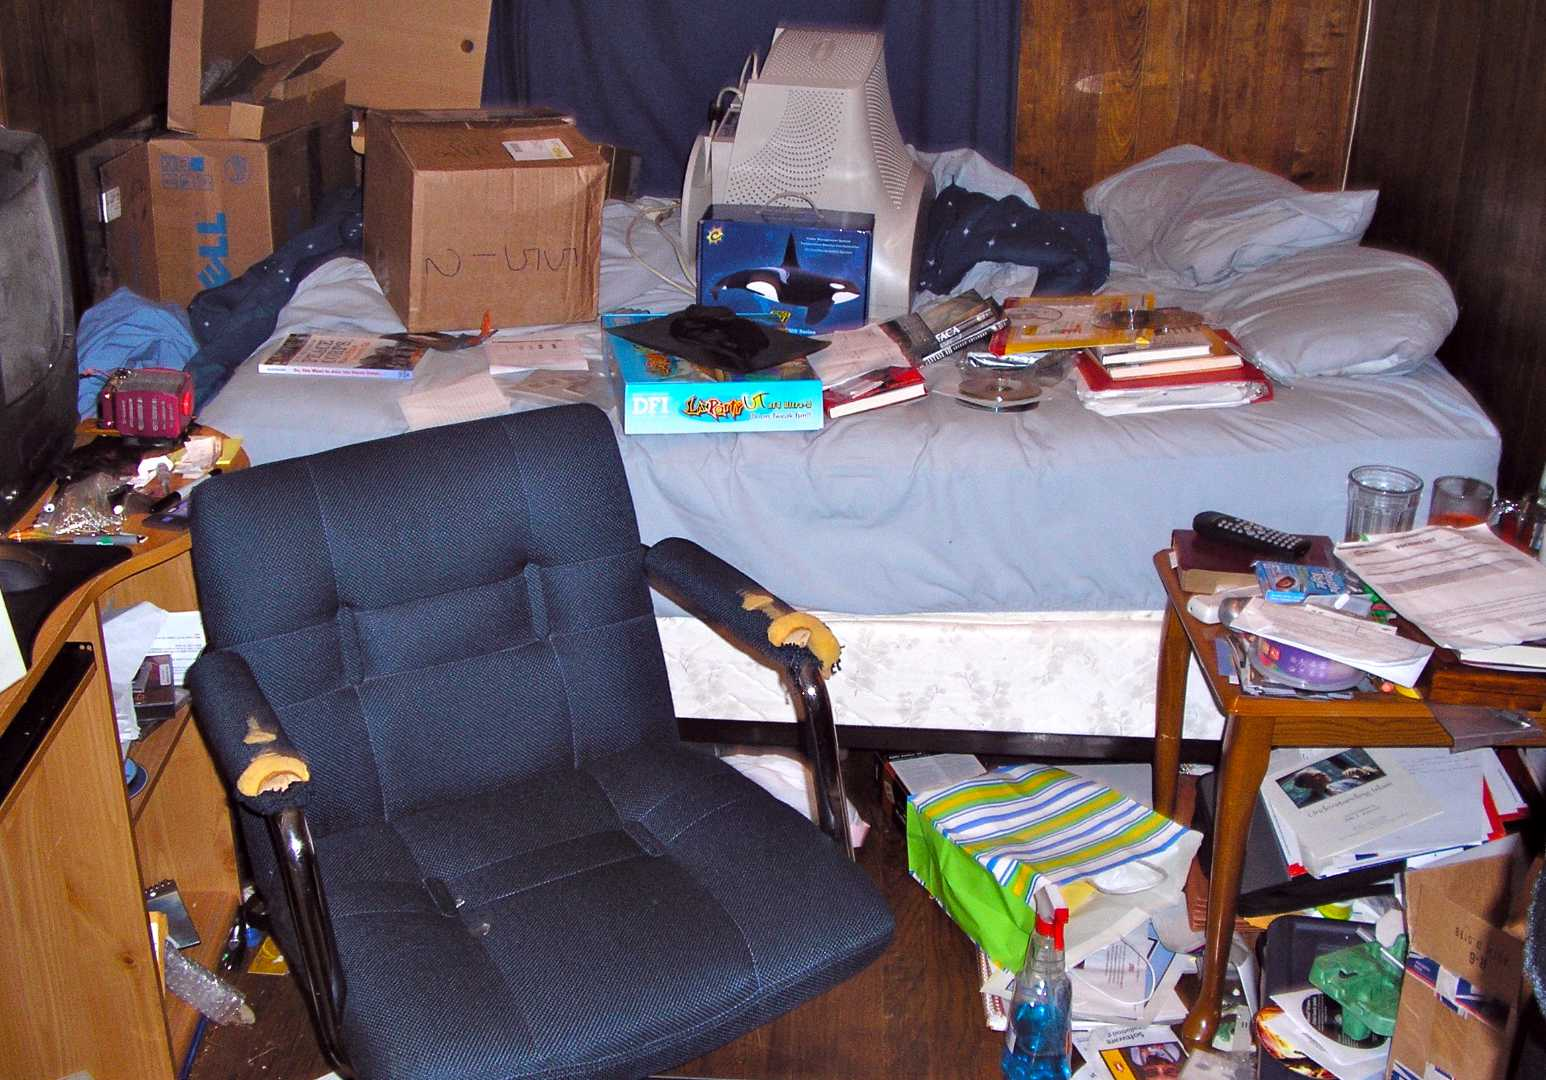 This is what move-out day looked like for me in 2006. Loads of clues in this photo about the future of my life, especially that Peace Corps book!